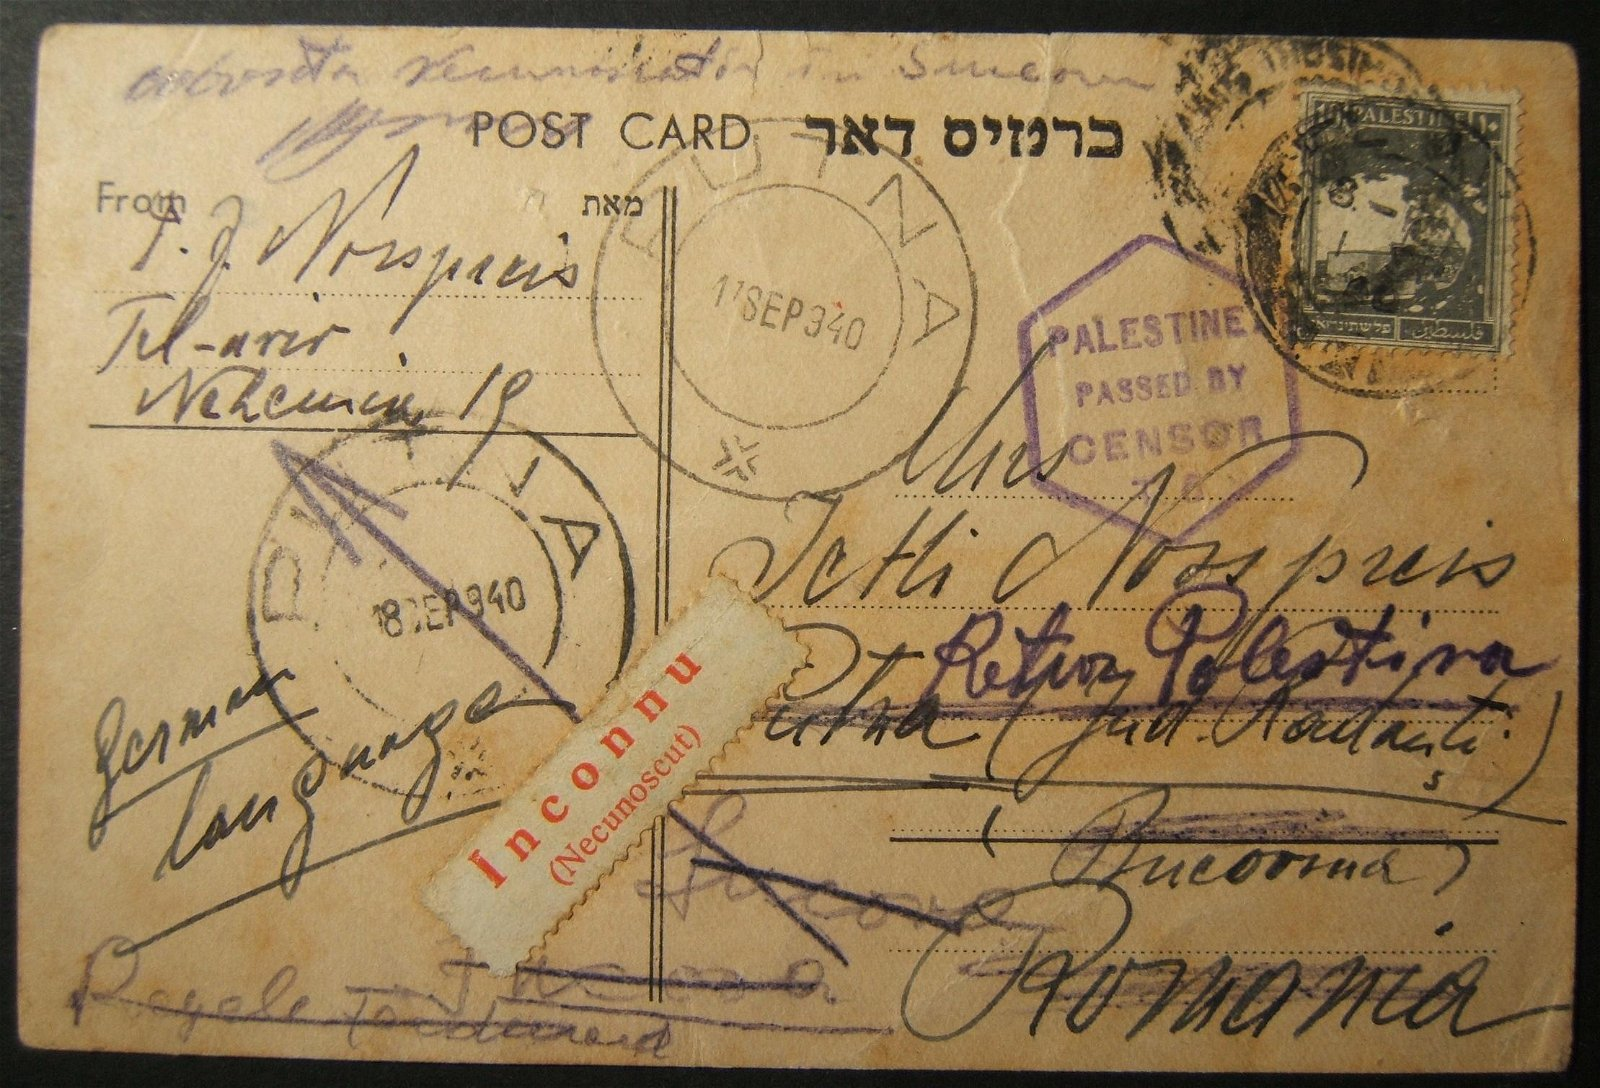 9/1940 WWII/Holocaust era mail from Palestine to